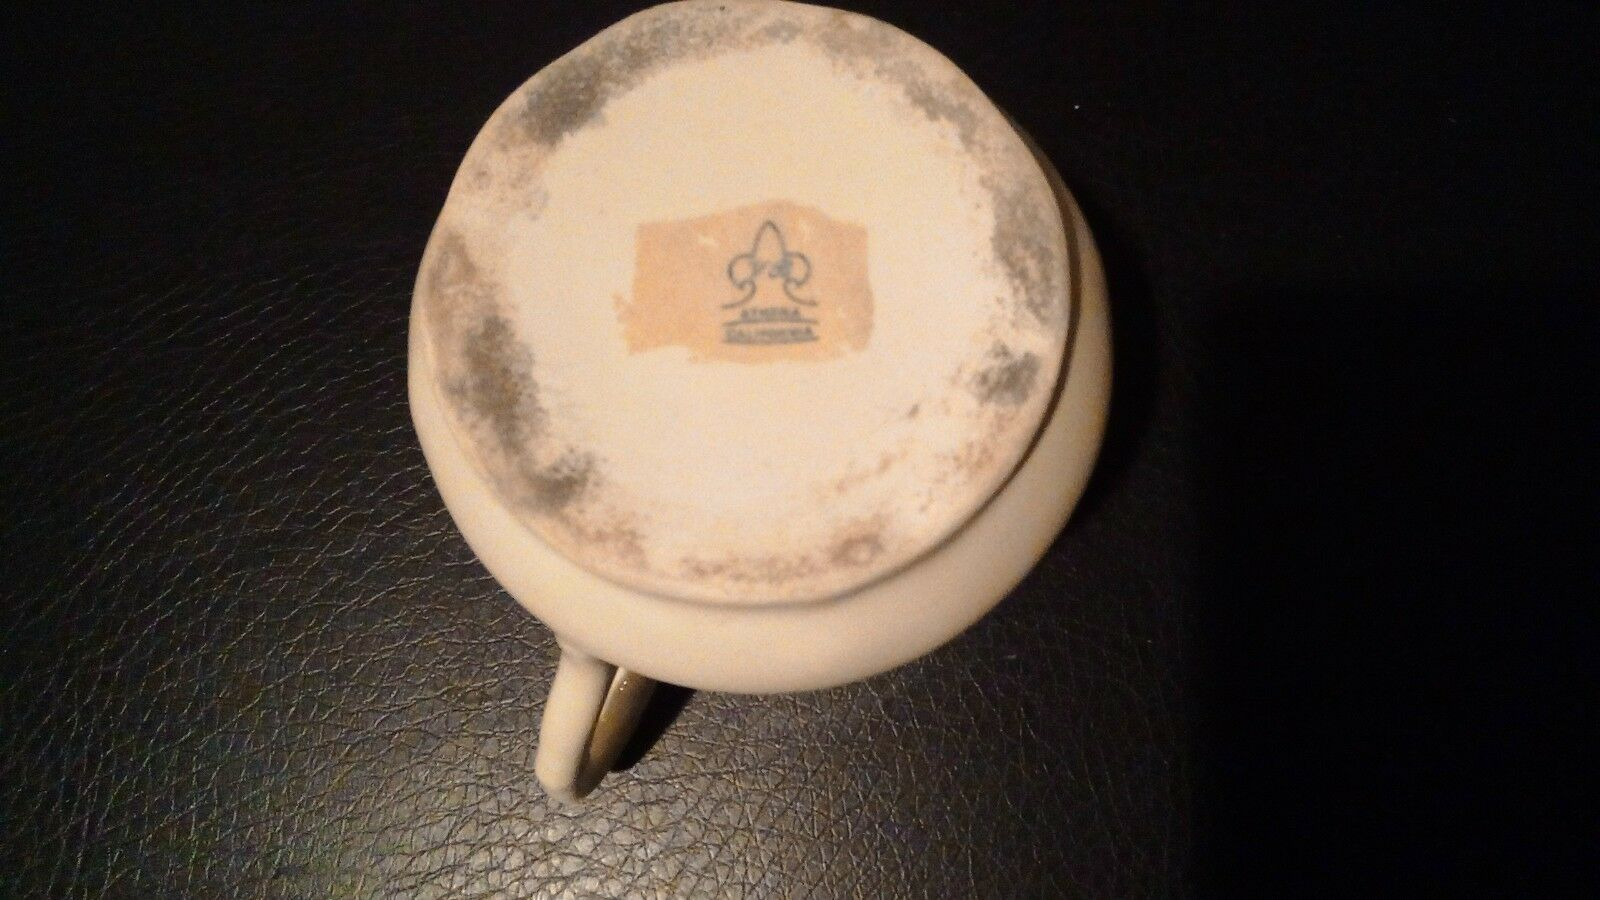 Vintage Athena California Floral Ceramic Toothbrush and Toothpaste Holder